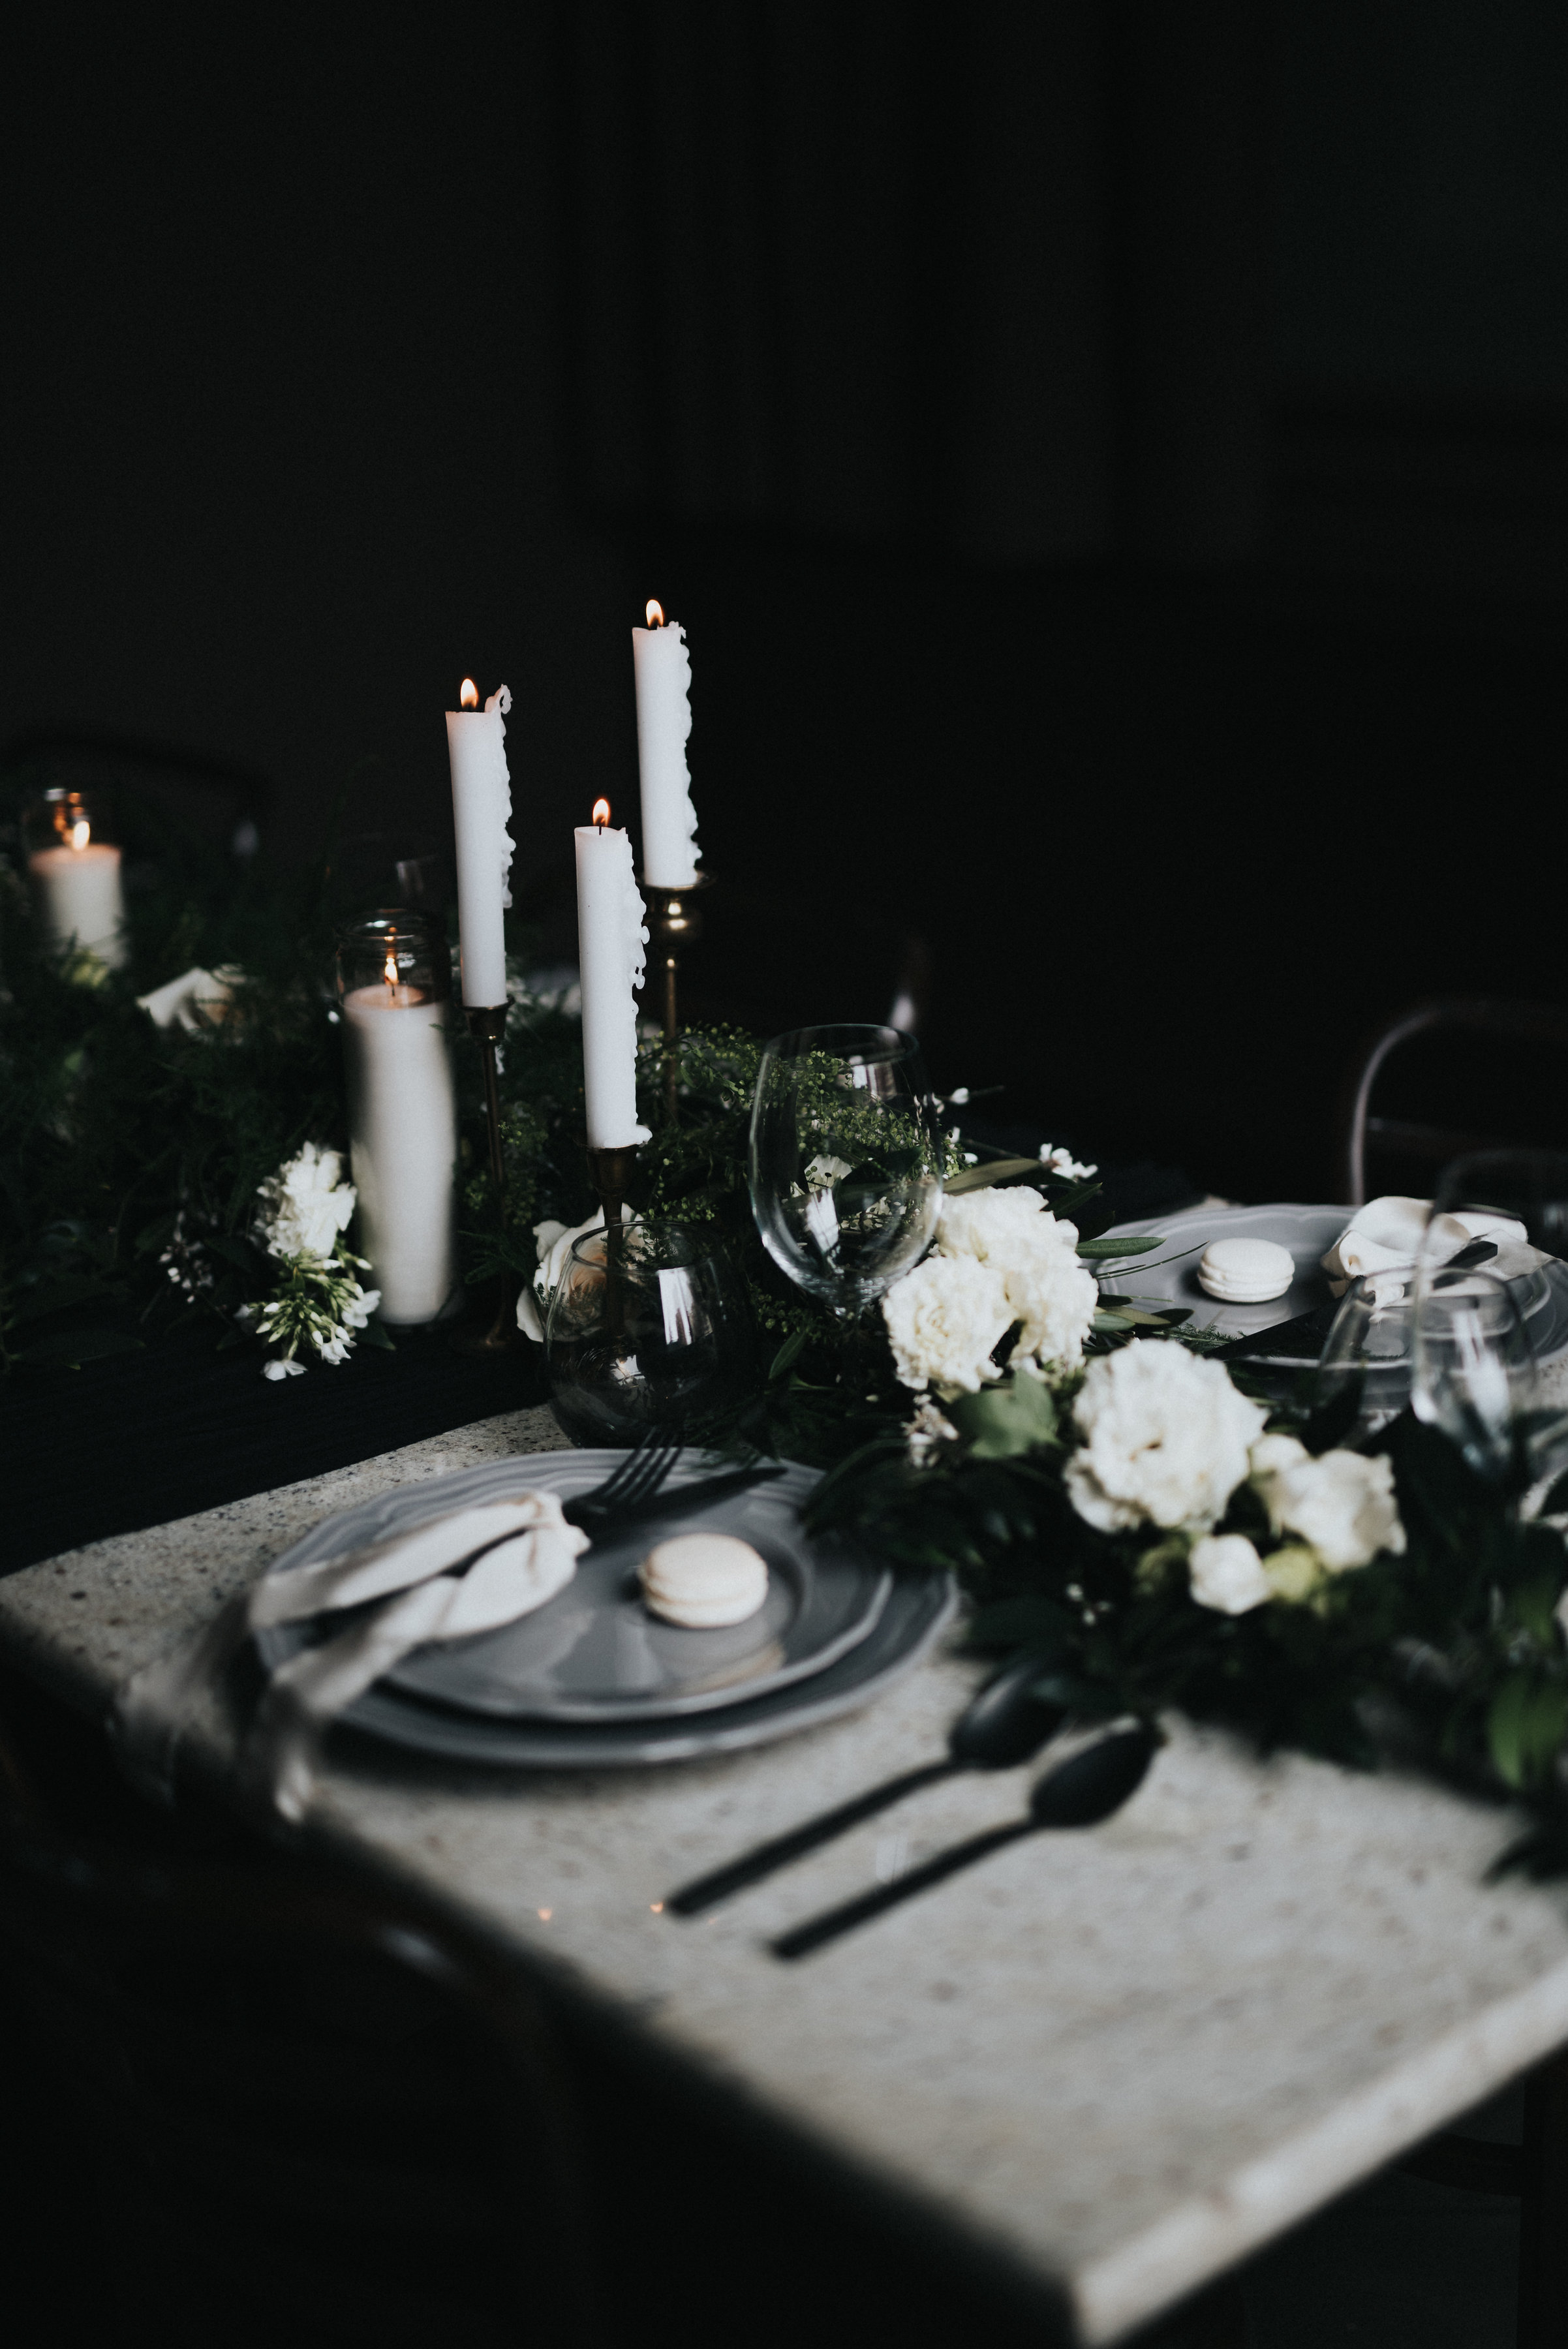 100 Layer Cake: Moody Lunar Inspired Wedding Inspiration. Click for more.